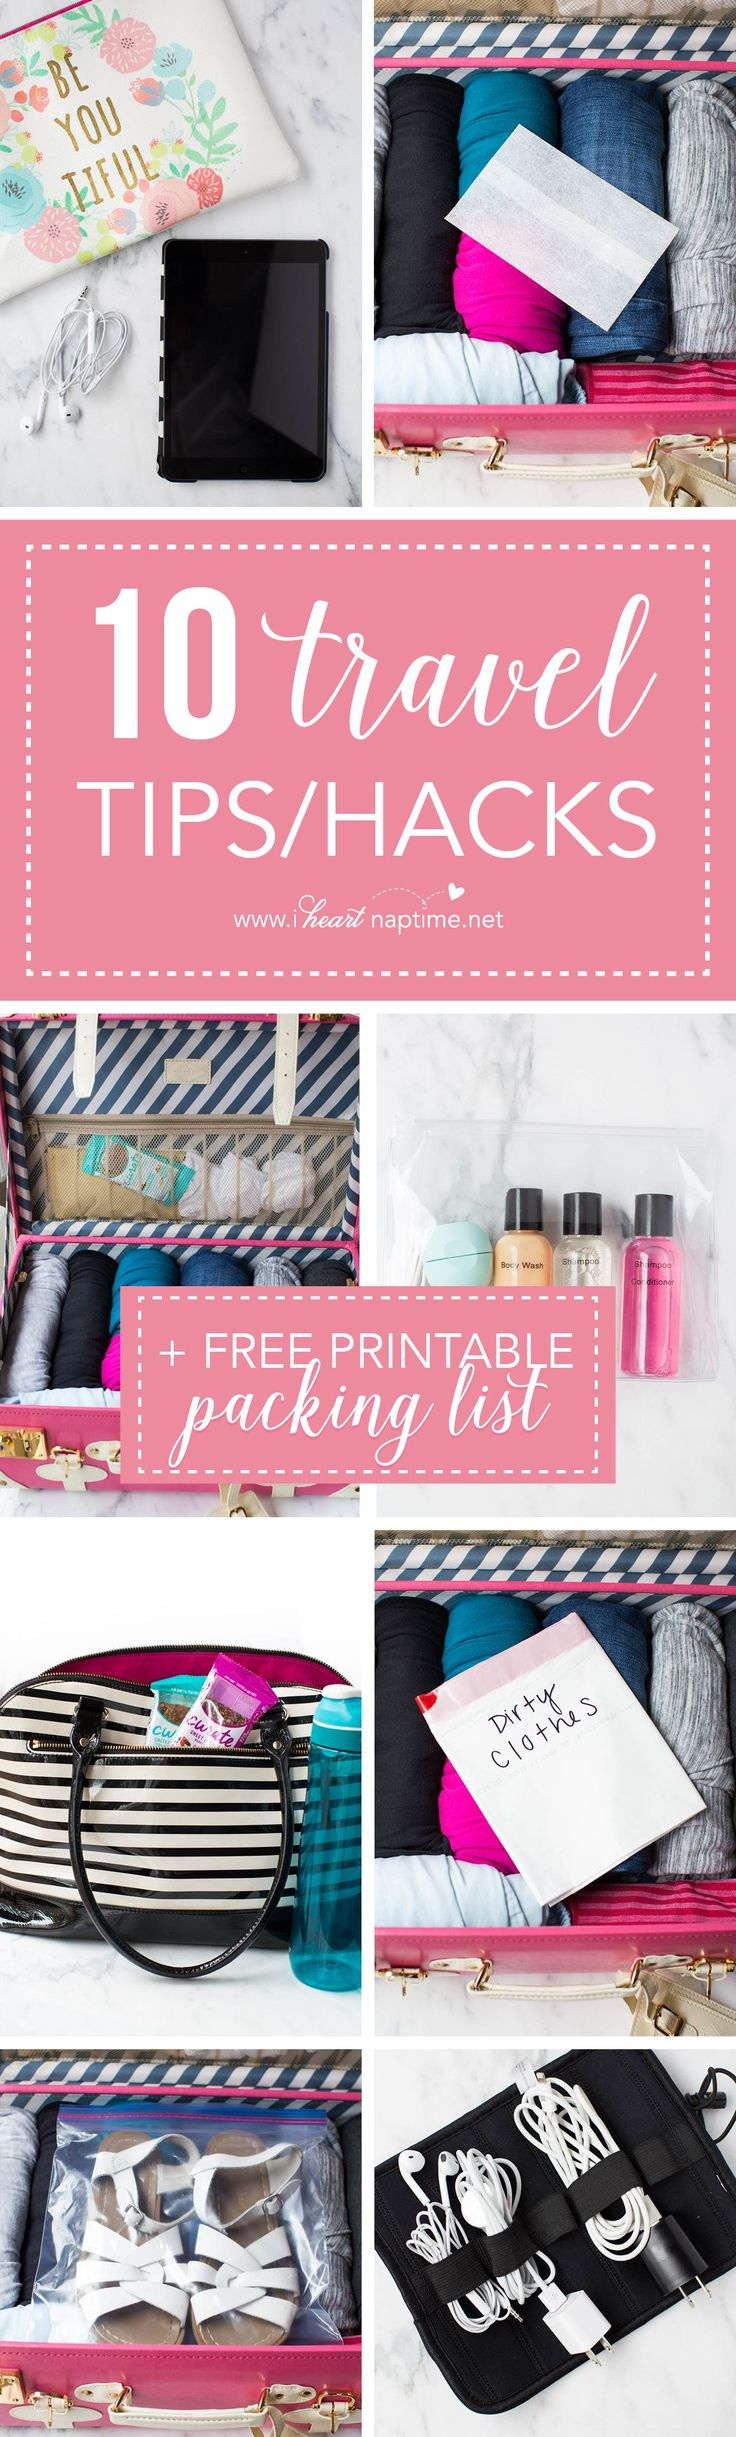 10 essential travel tips and hacks + free printable packing list - extremely helpful for vacations and trips!